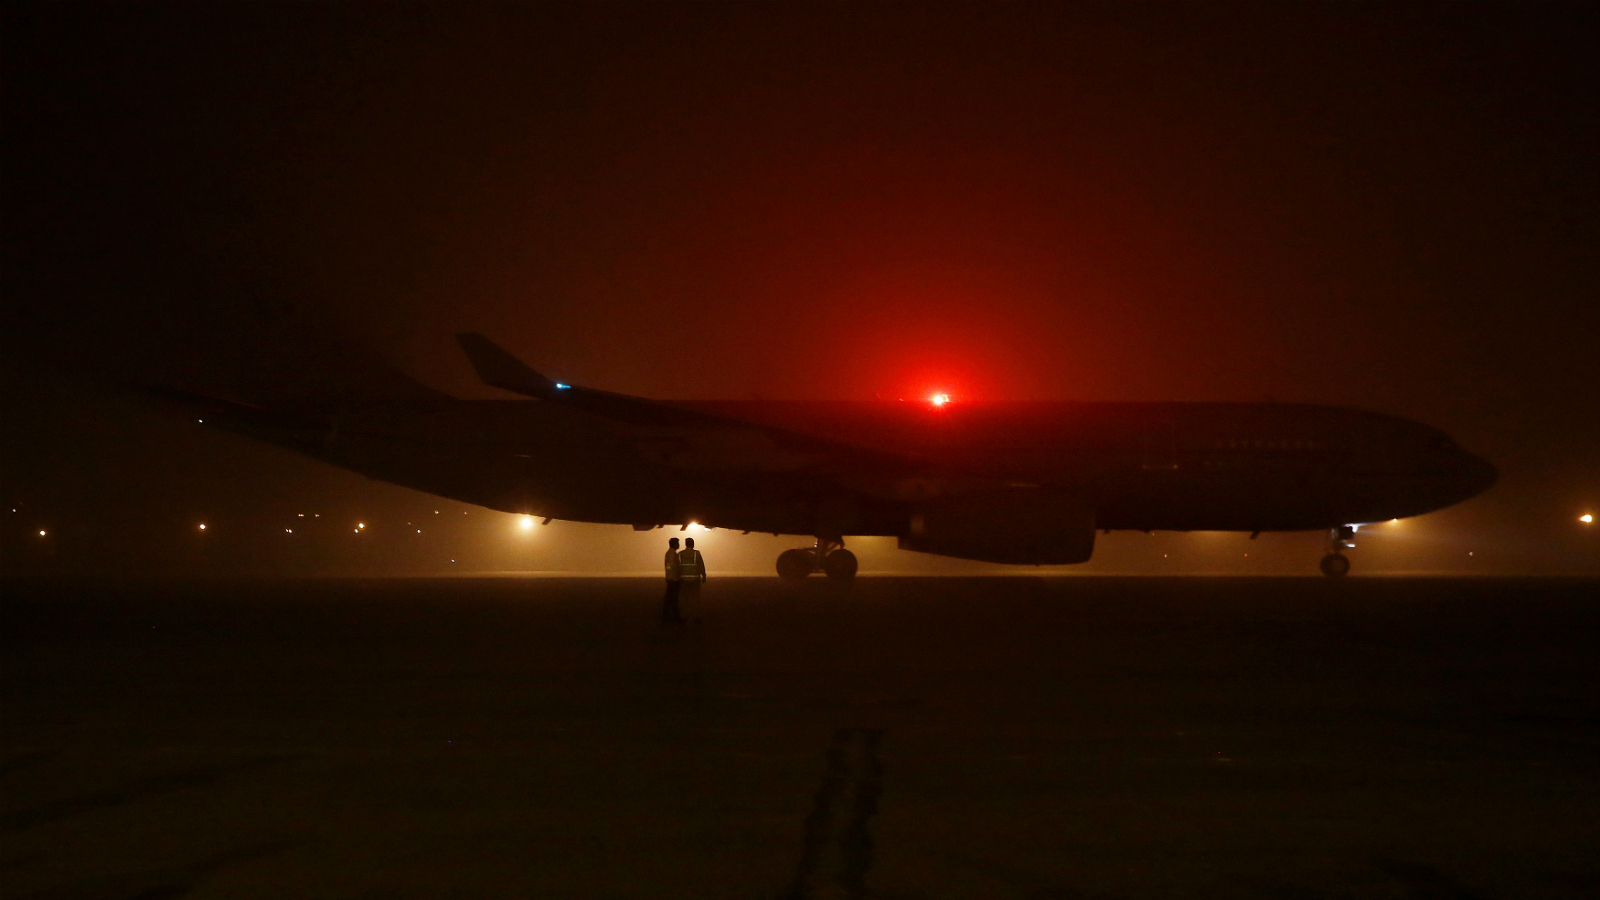 Airport staff stand as Britain's Prime Minister Theresa May's aircraft arrives amid the heavy smog at the airport in New Delhi, India, November 6, 2016.